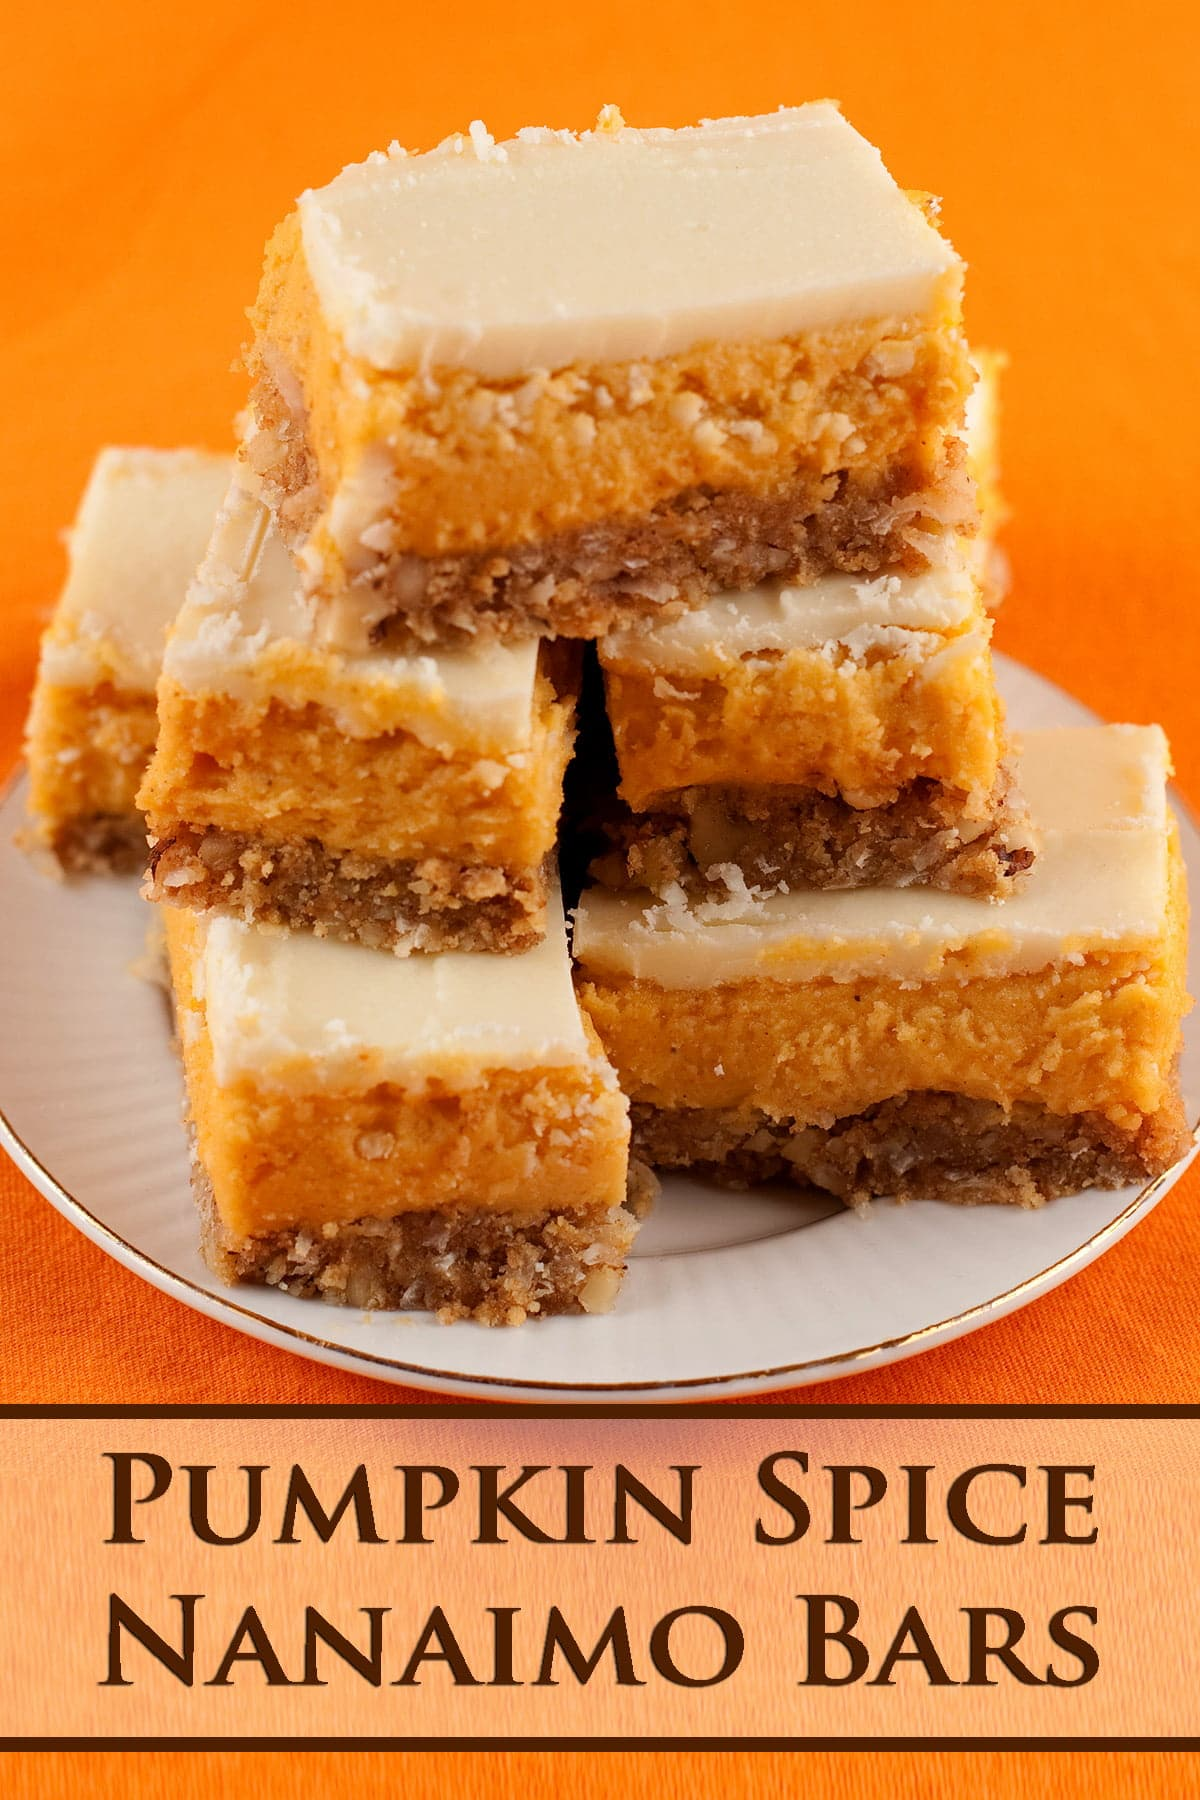 A plate of Pumpkin Nanaimo Bars - 3 layered bars. The bottom layer is a graham cookie coloured base, the middle is an orange - pumpkin - buttercream, and it is topped off with white chocolate gamache.